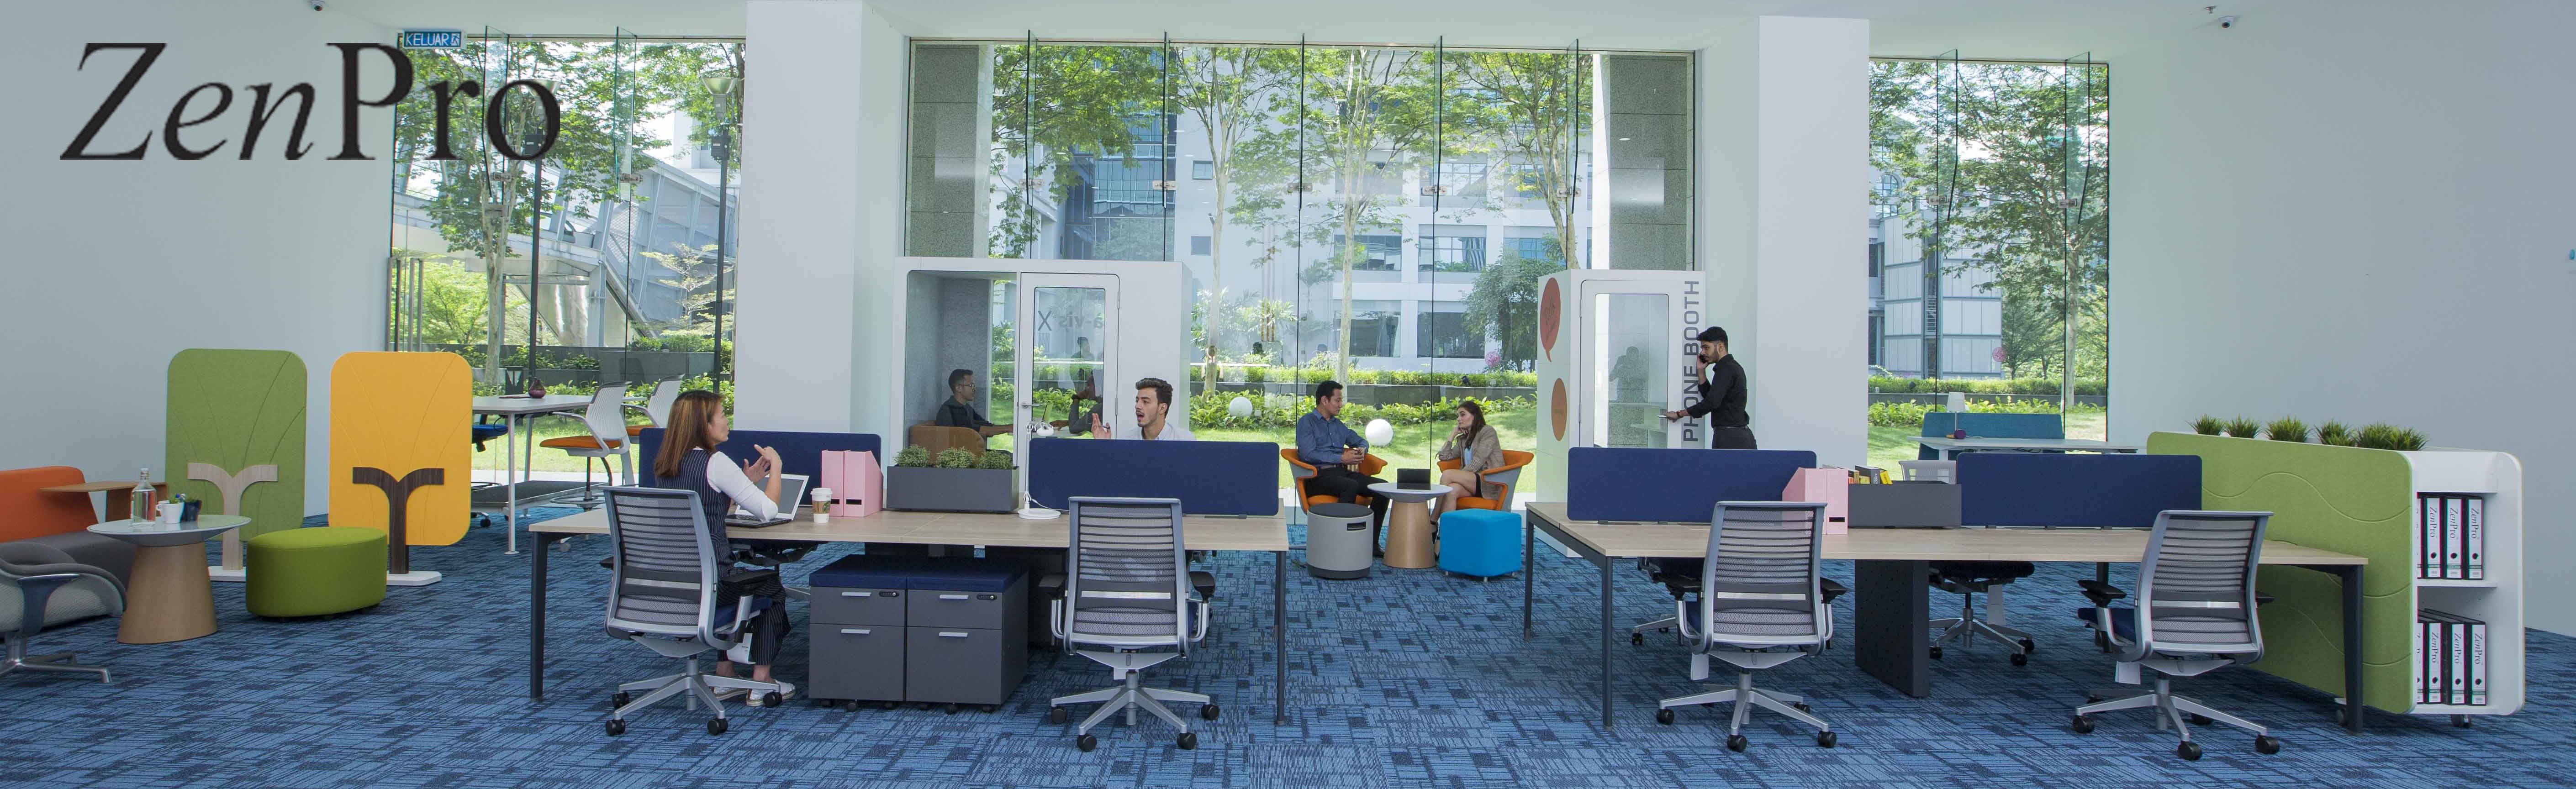 SQS open plan desk furniture